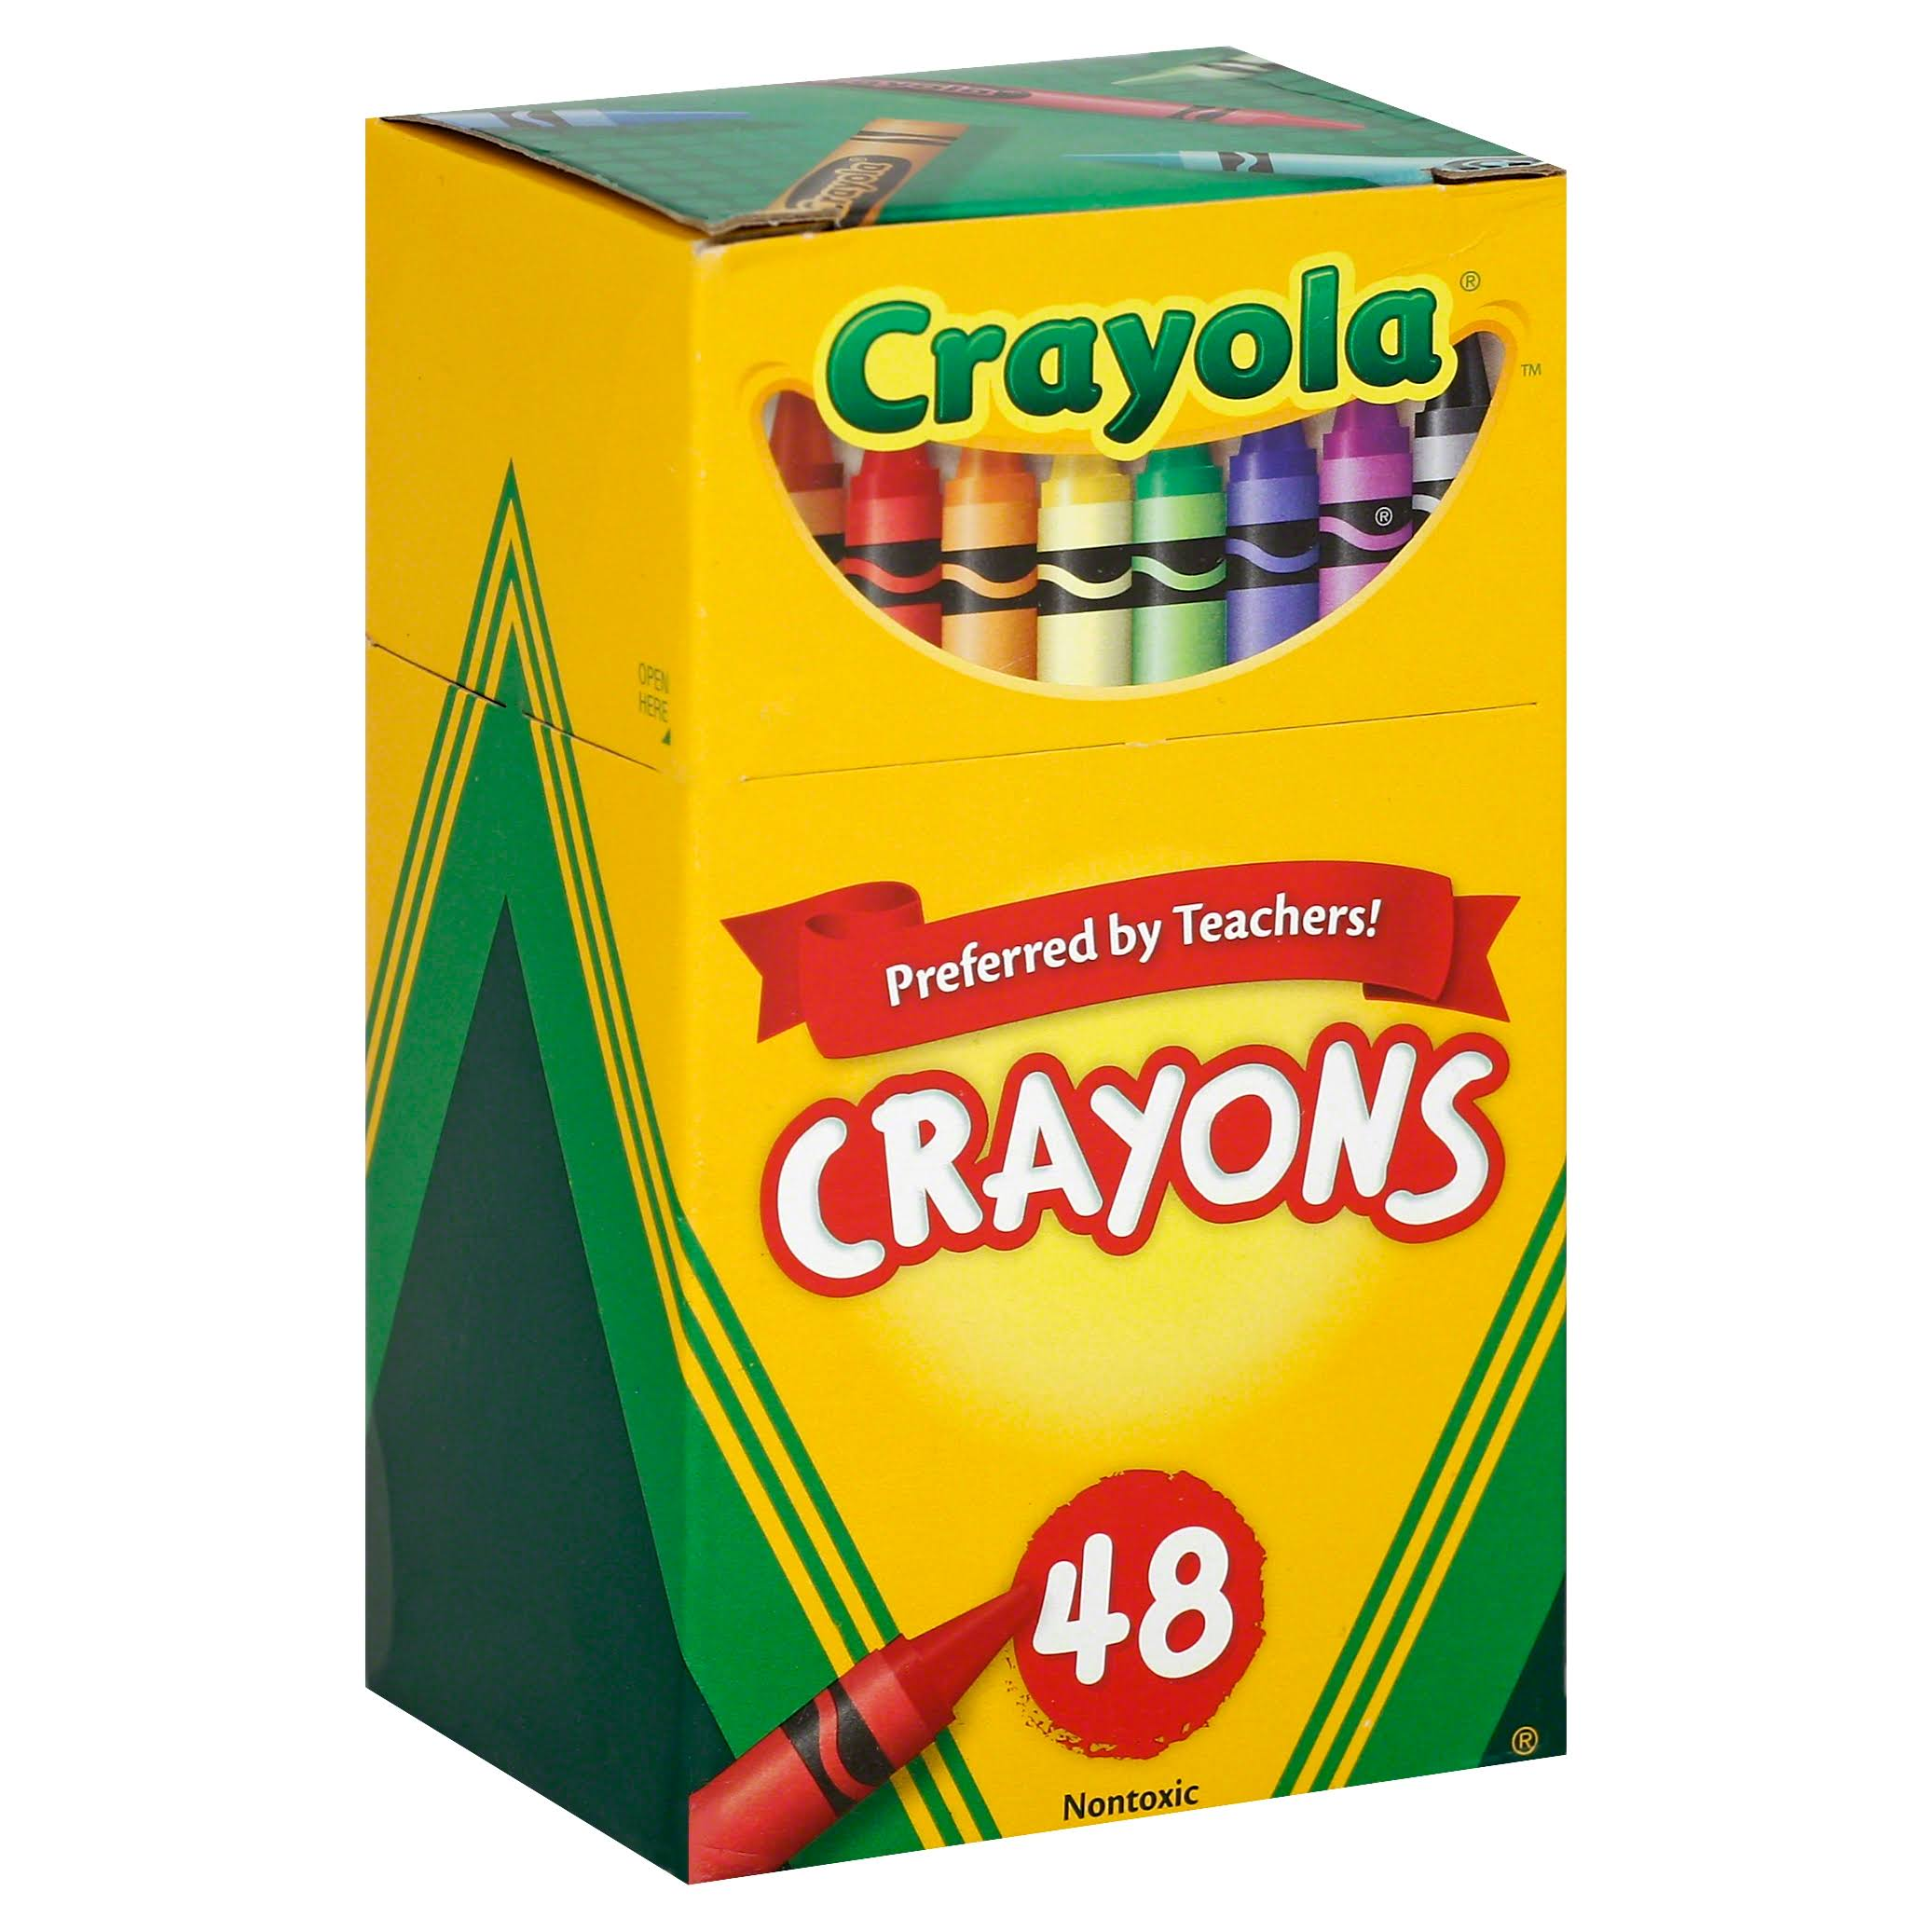 Crayola Crayons - 48 colors